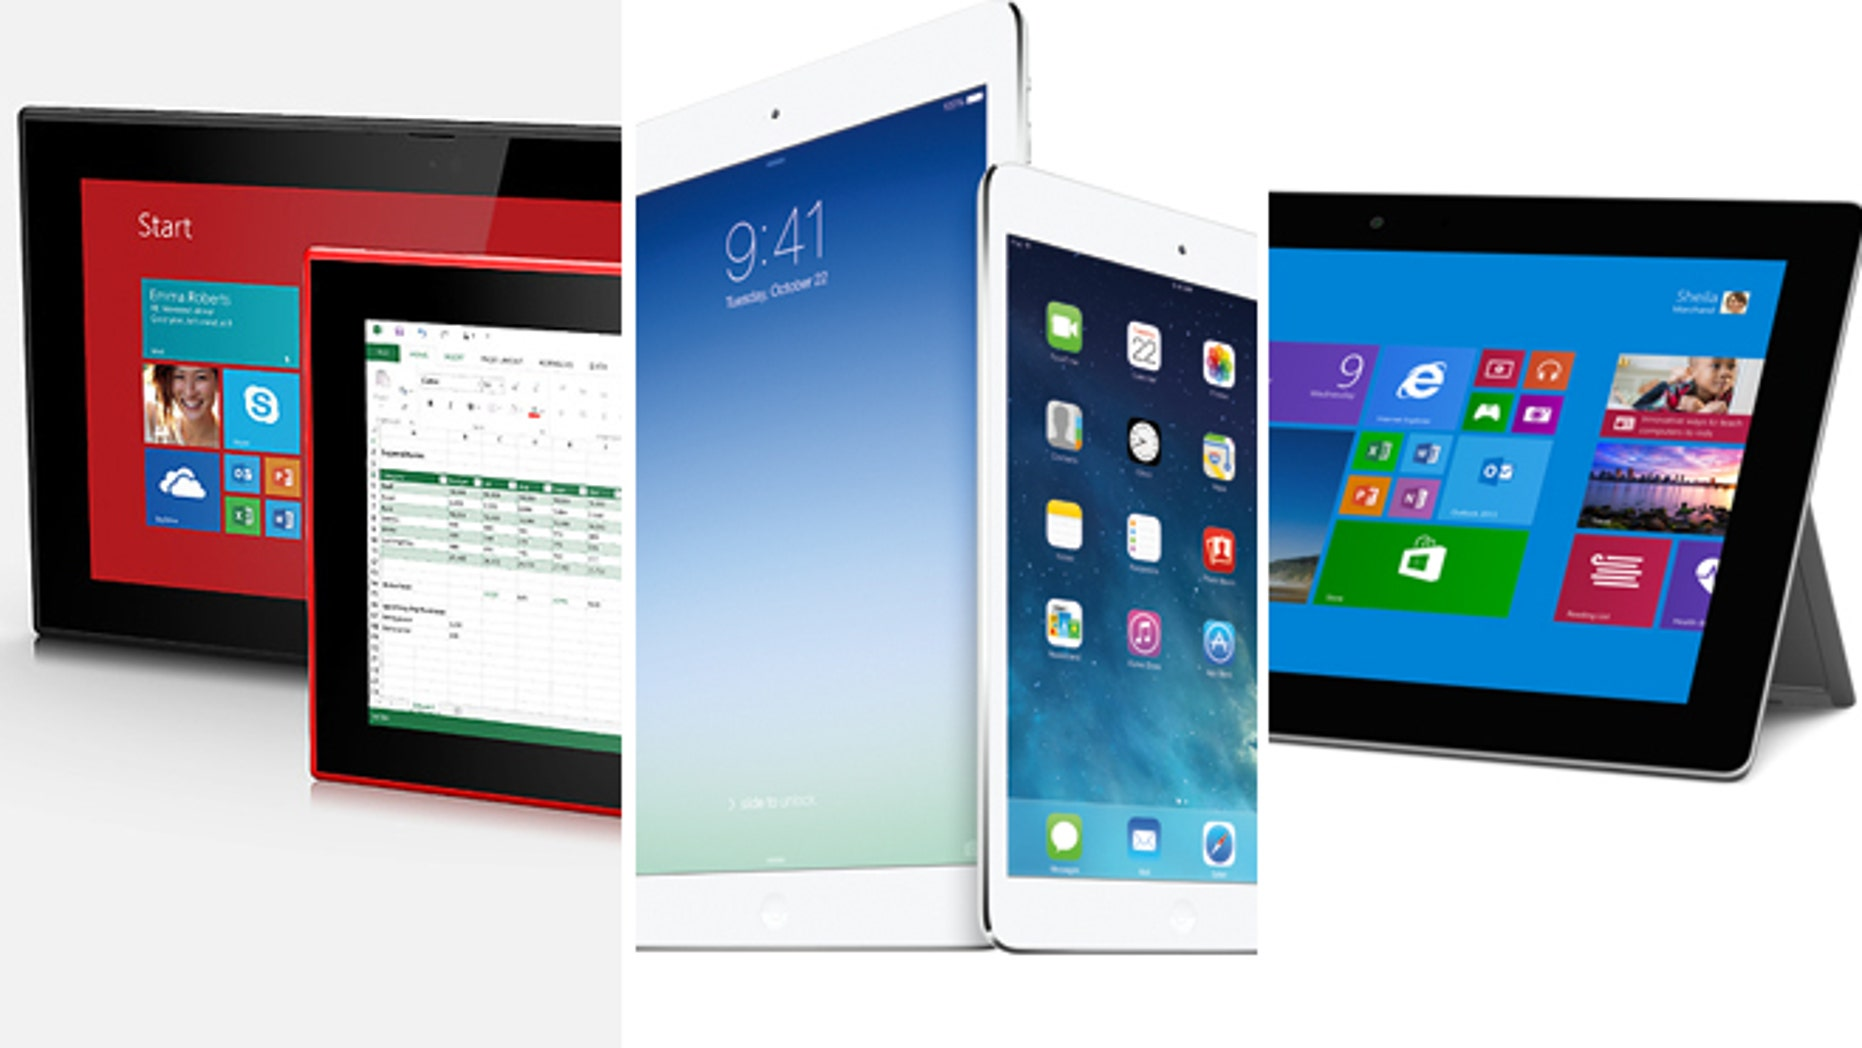 This week saw the introduction of new tablets from Nokia (left), Apple (center) and Microsoft (right), implying profound demand for the gizmos. But can we live by tablets only?